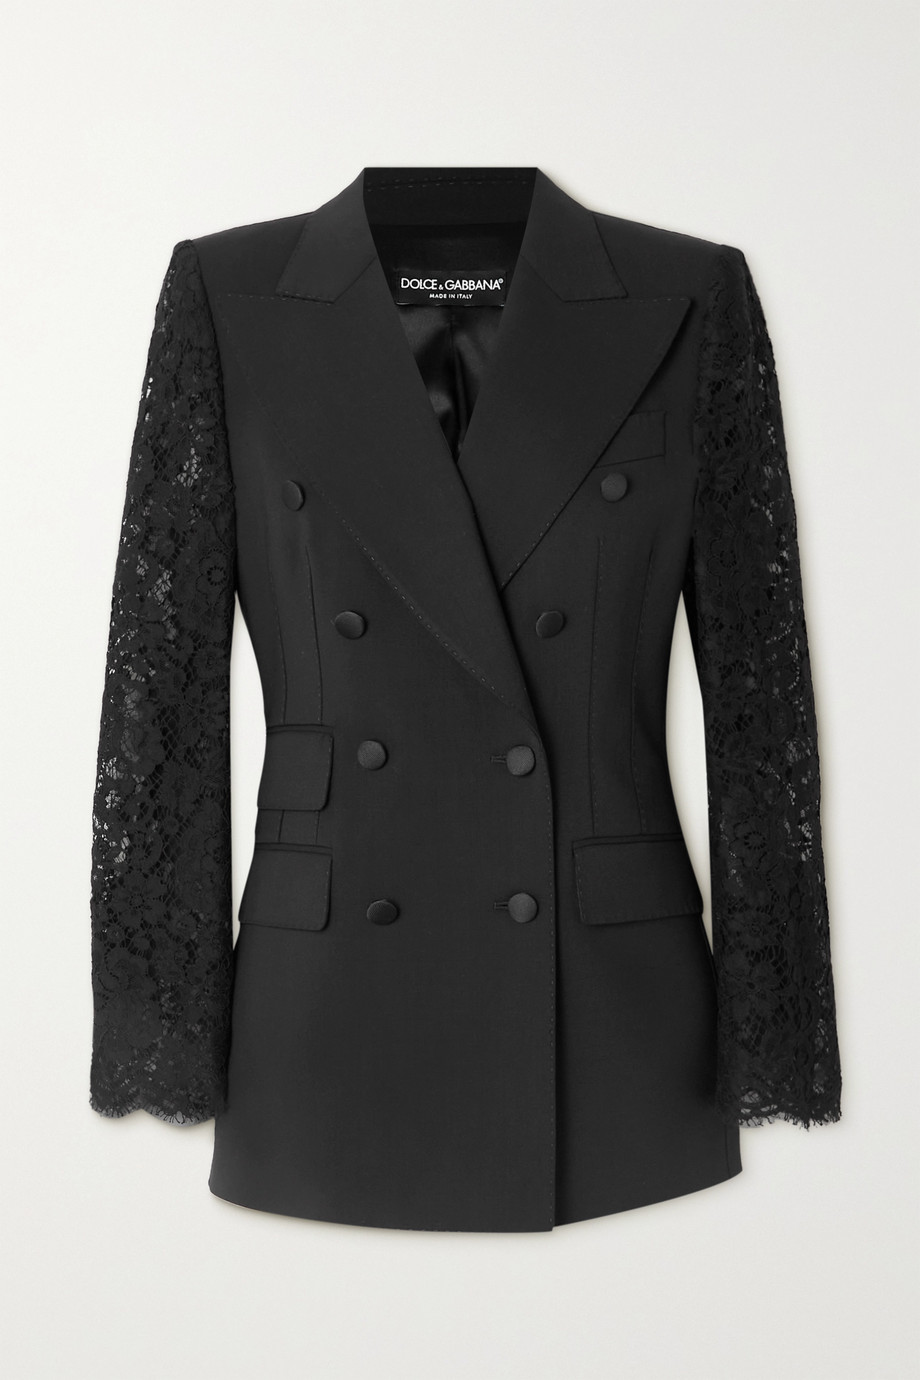 Dolce & Gabbana Double-breasted topstitched wool-blend and lace blazer